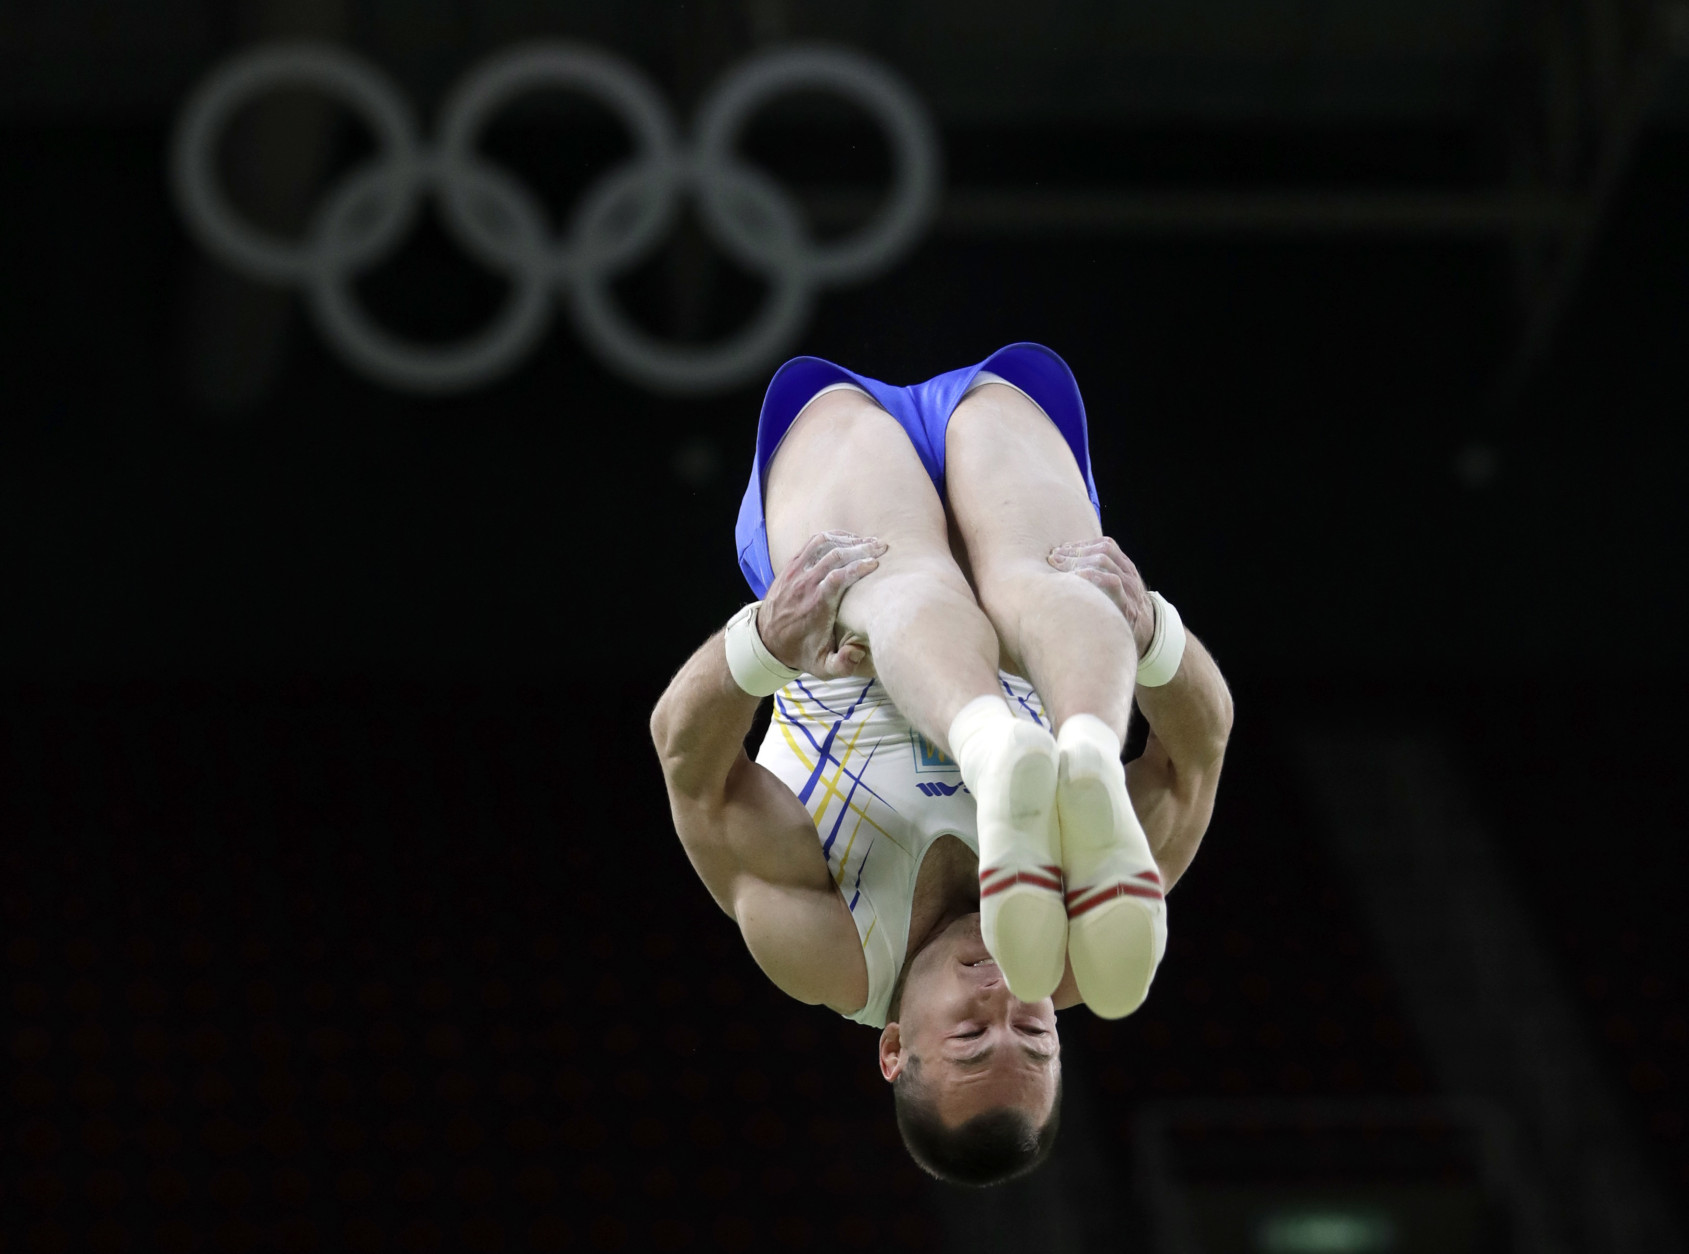 Ukraine's Igor Radivilov trains on the vault ahead of the 2016 Summer Olympics in Rio de Janeiro, Brazil, Wednesday, Aug. 3, 2016. (AP Photo/Dmitri Lovetsky)